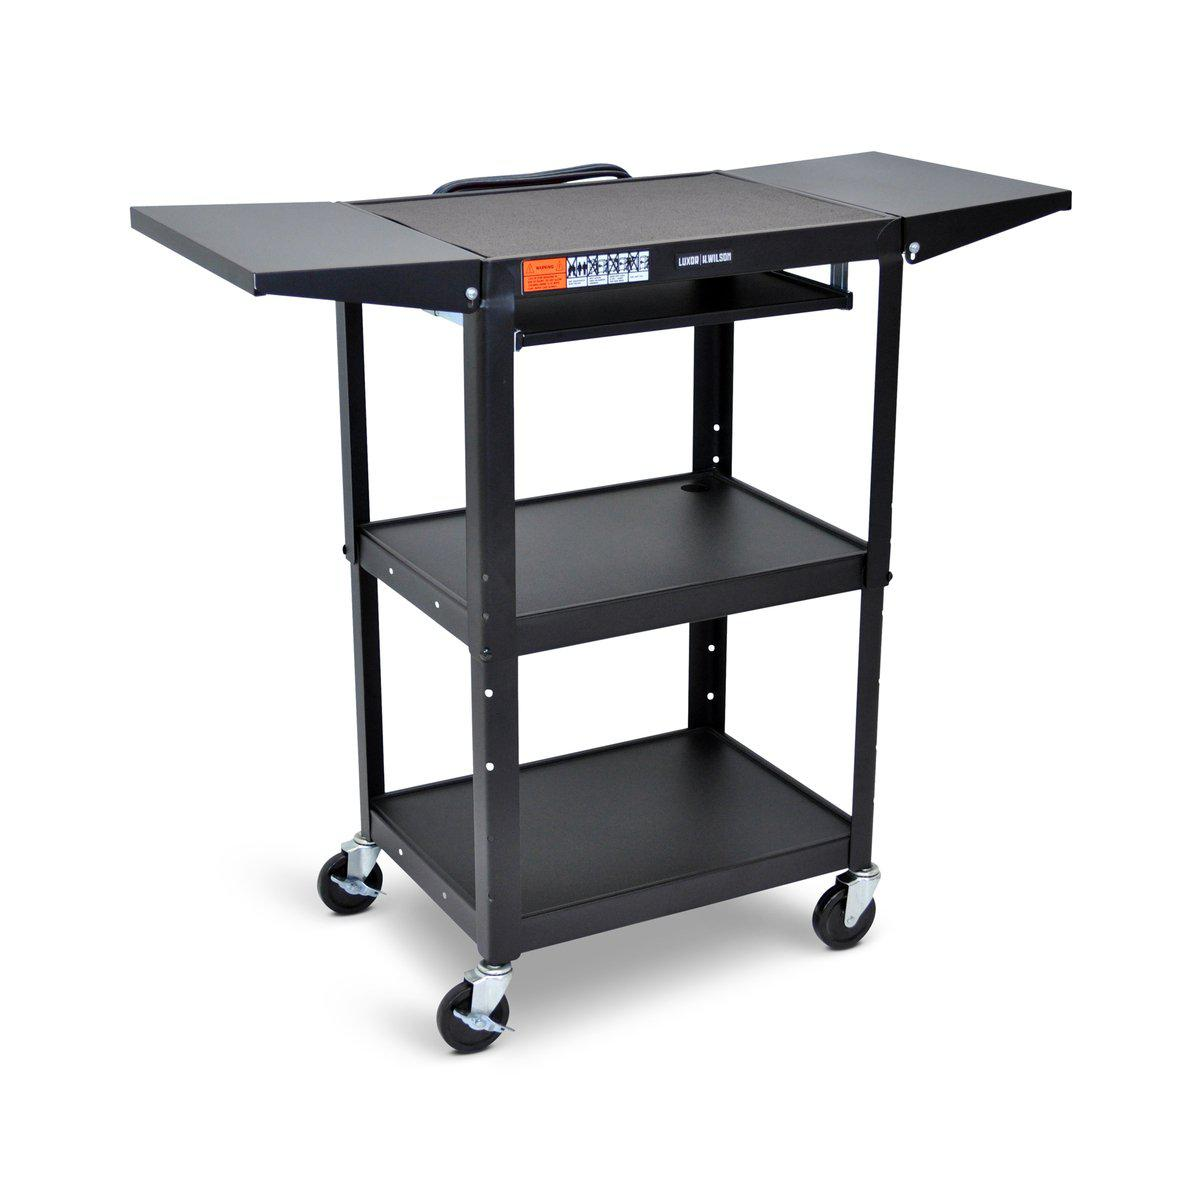 Adjustable-Height Steel AV Cart with Pullout Keyboard Tray and Drop Leaf Shelves